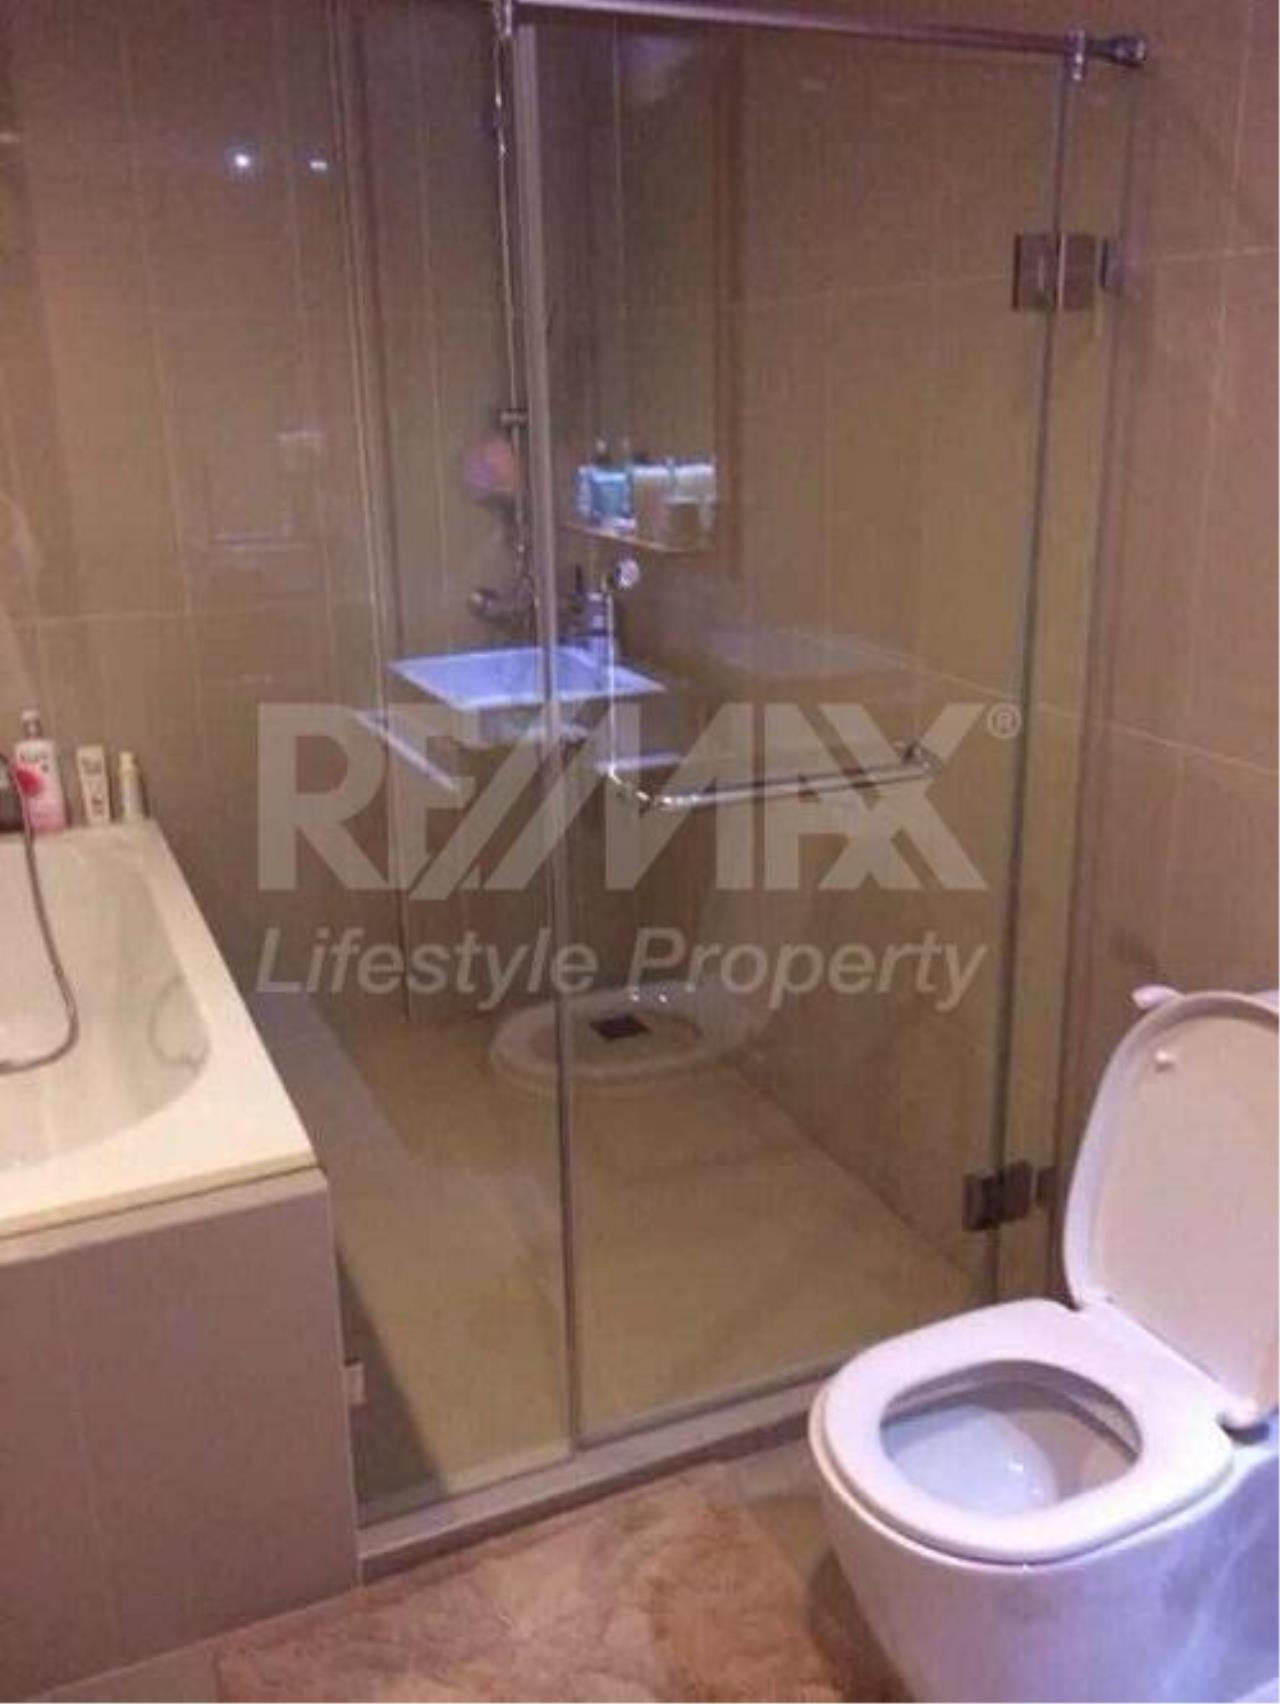 RE/MAX LifeStyle Property Agency's D 25 Thonglor 6